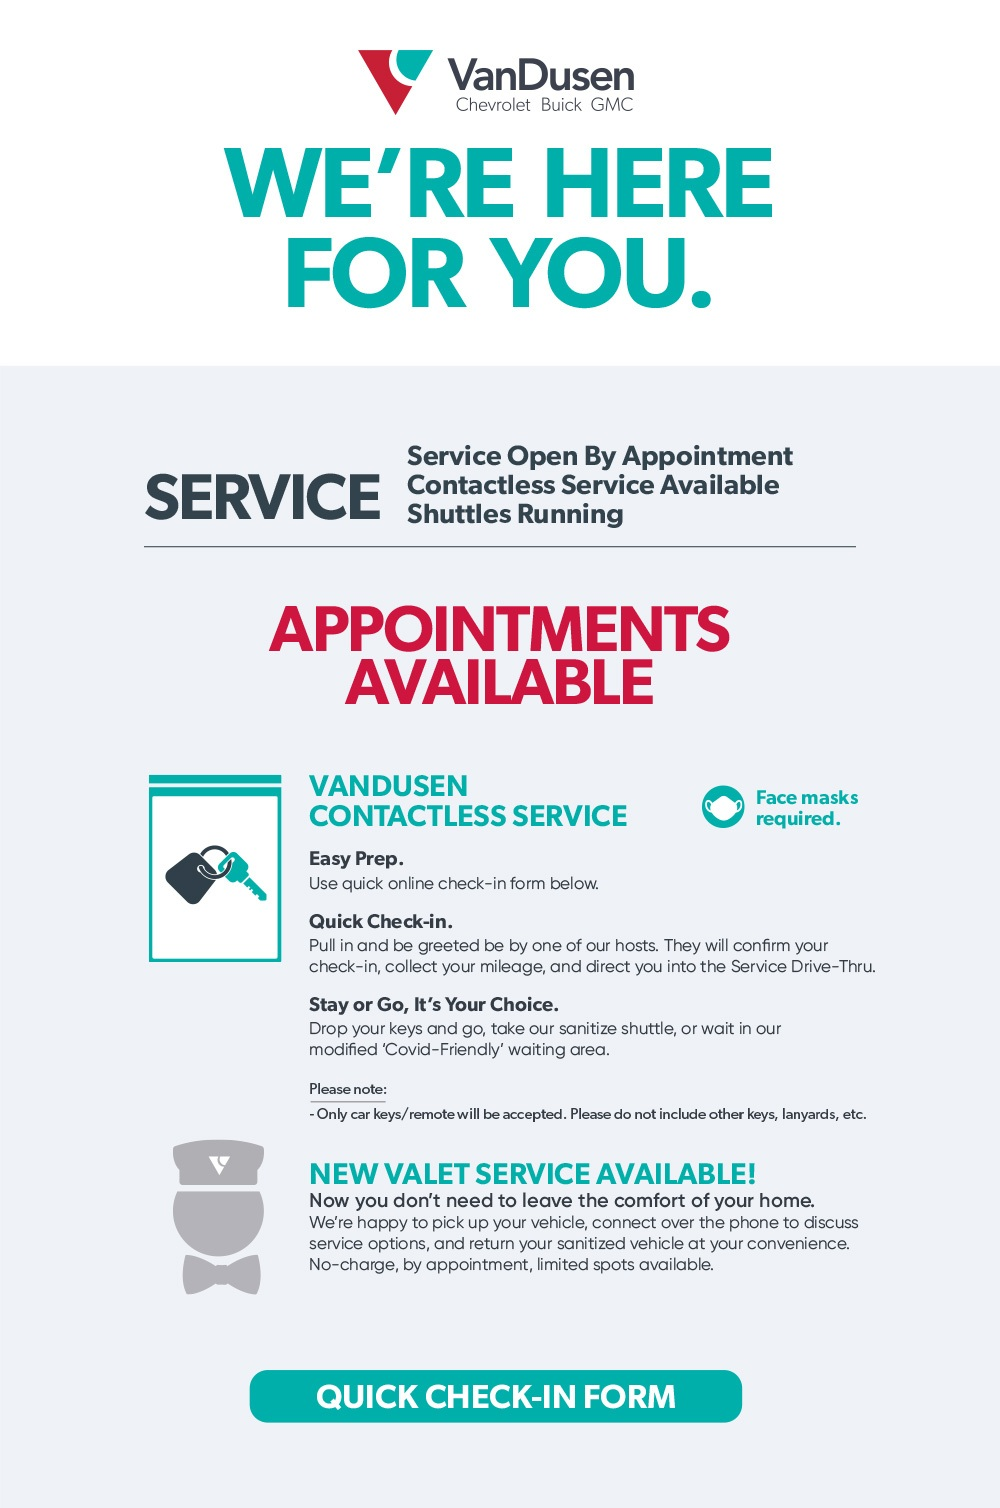 Service Appointments Available